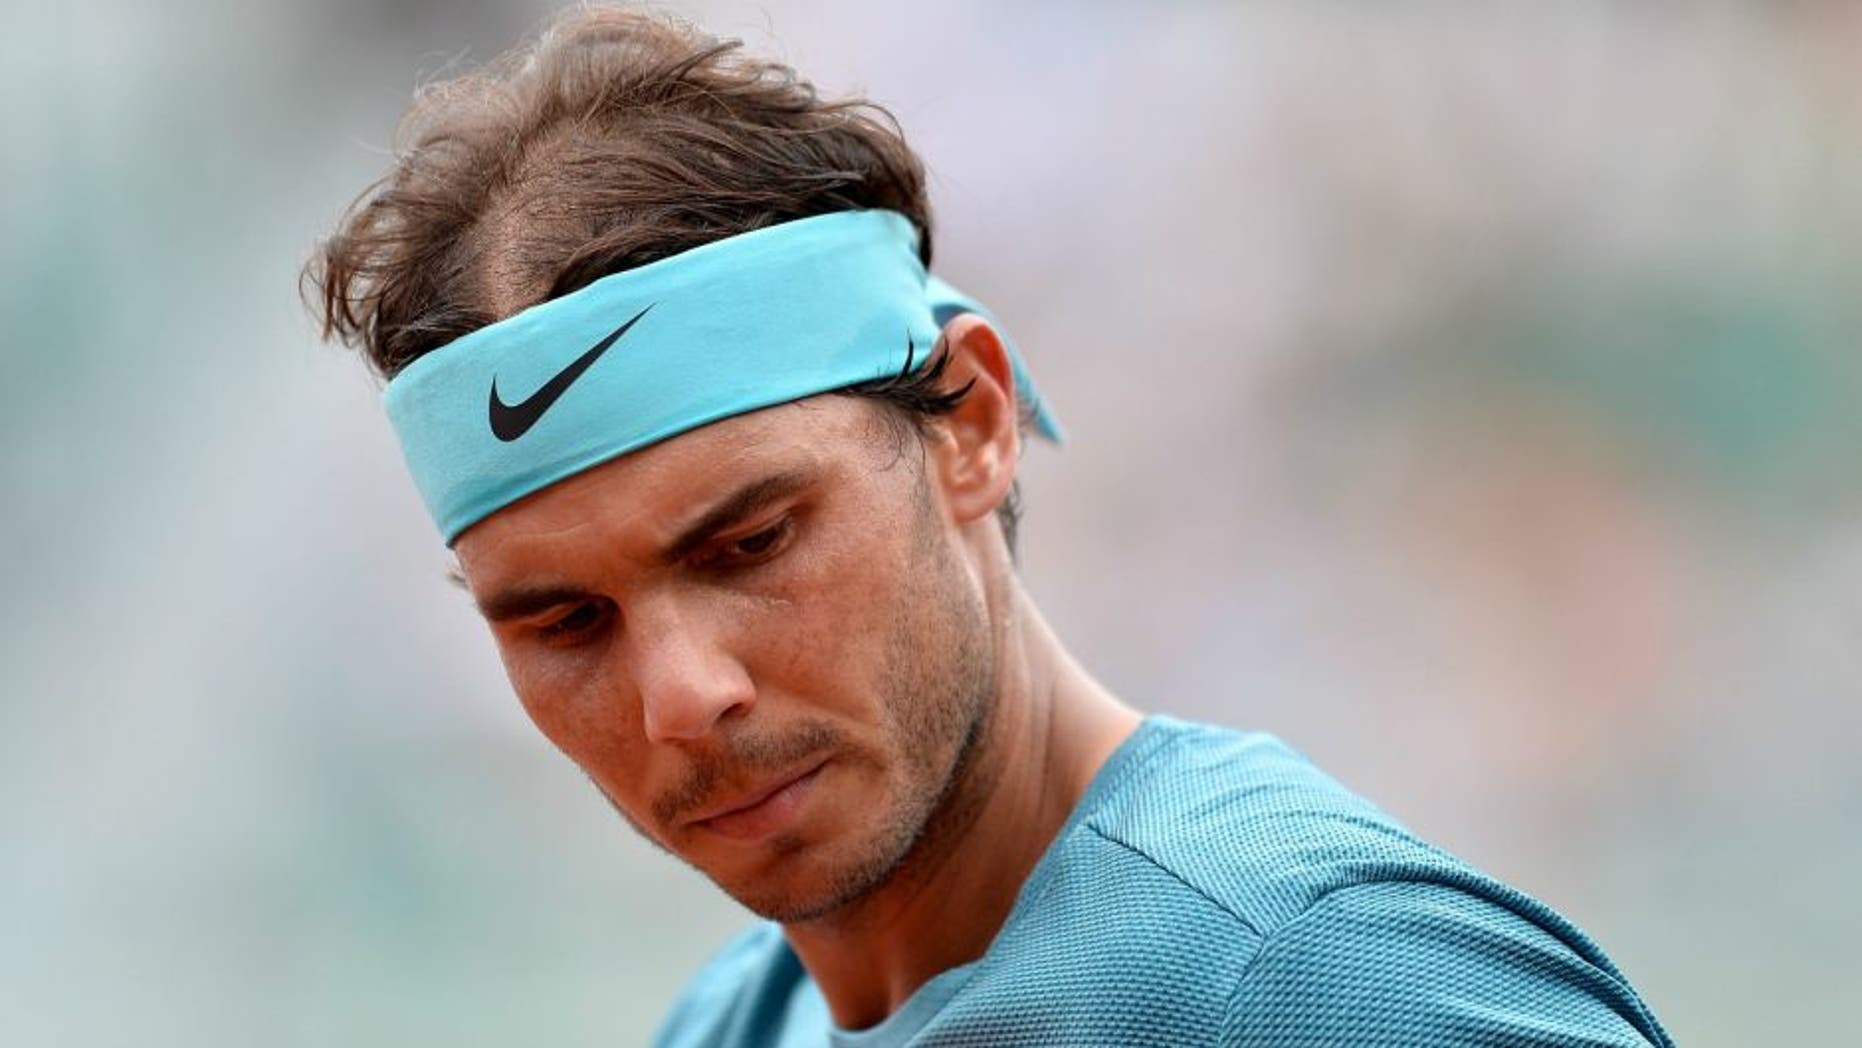 PARIS, FRANCE - MAY 26: Rafael Nadal of Spain reacts during his men's single second round match against Facundo Bagnis of Argentina on day five of the 2016 French Open at Roland Garros on May 26, 2016 in Paris, France. (Photo by Aurelien Meunier/Getty Images)